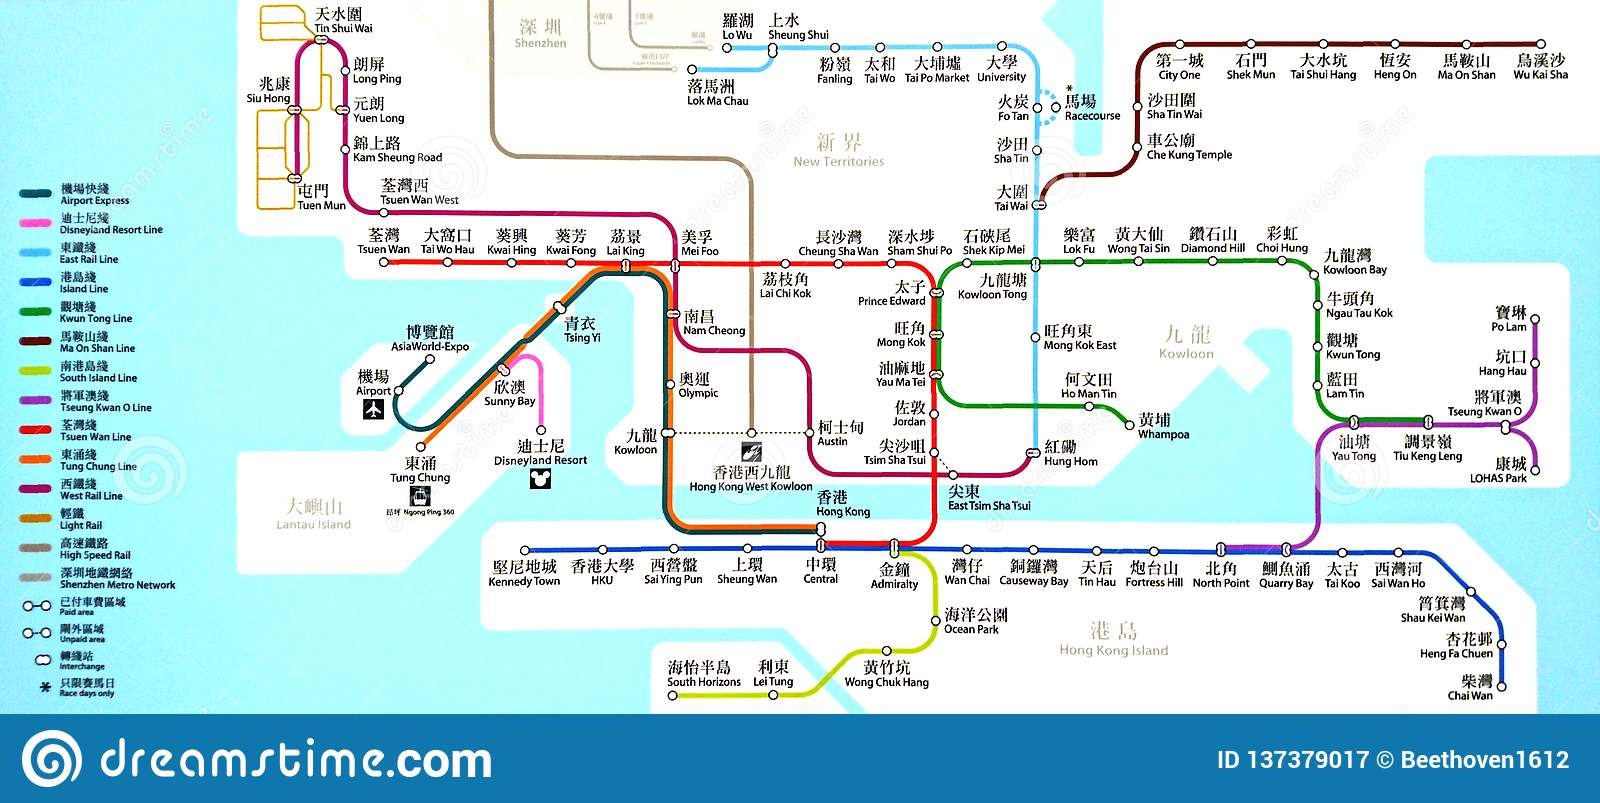 MTR Station Route Map In Hong Kong Editorial Photography ... on amsterdam metro station map, ridley island bc map, new york city subway, new york e train map, terminal island railroad map, k t railway map, china high speed rail map, iowa rail corridors map,